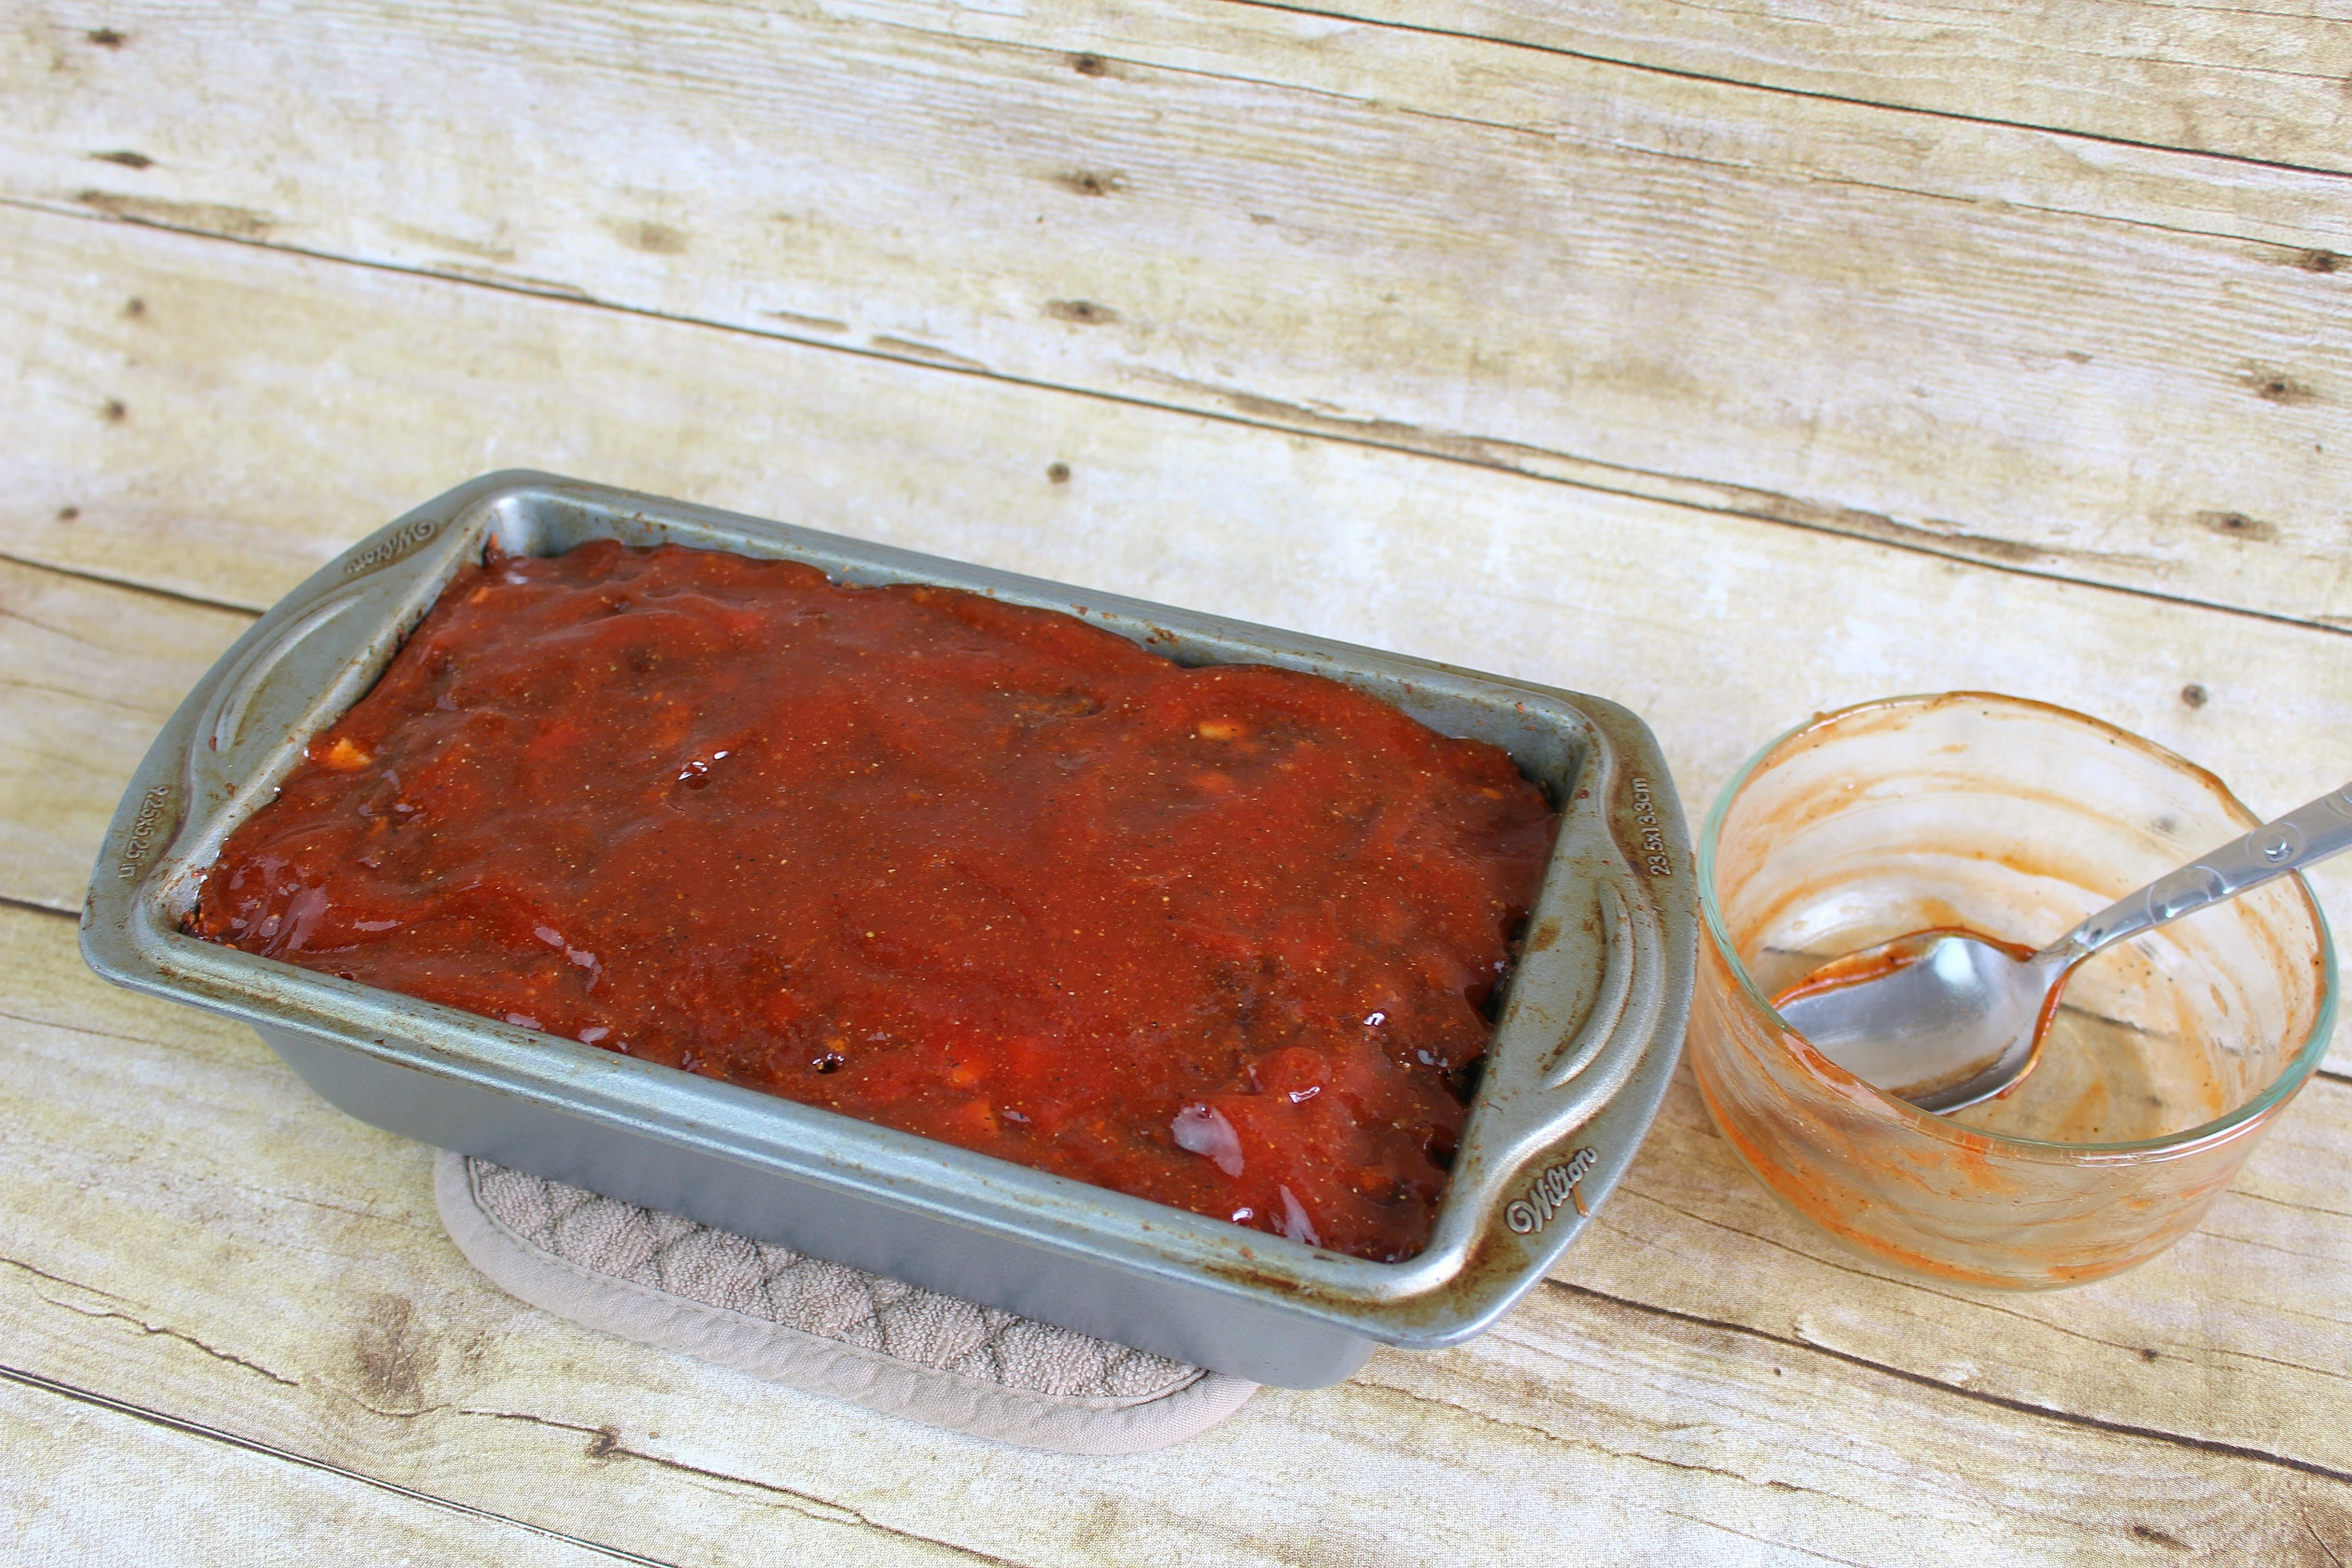 Apply sauce to the top of the meatloaf after it's cooked for about and hour